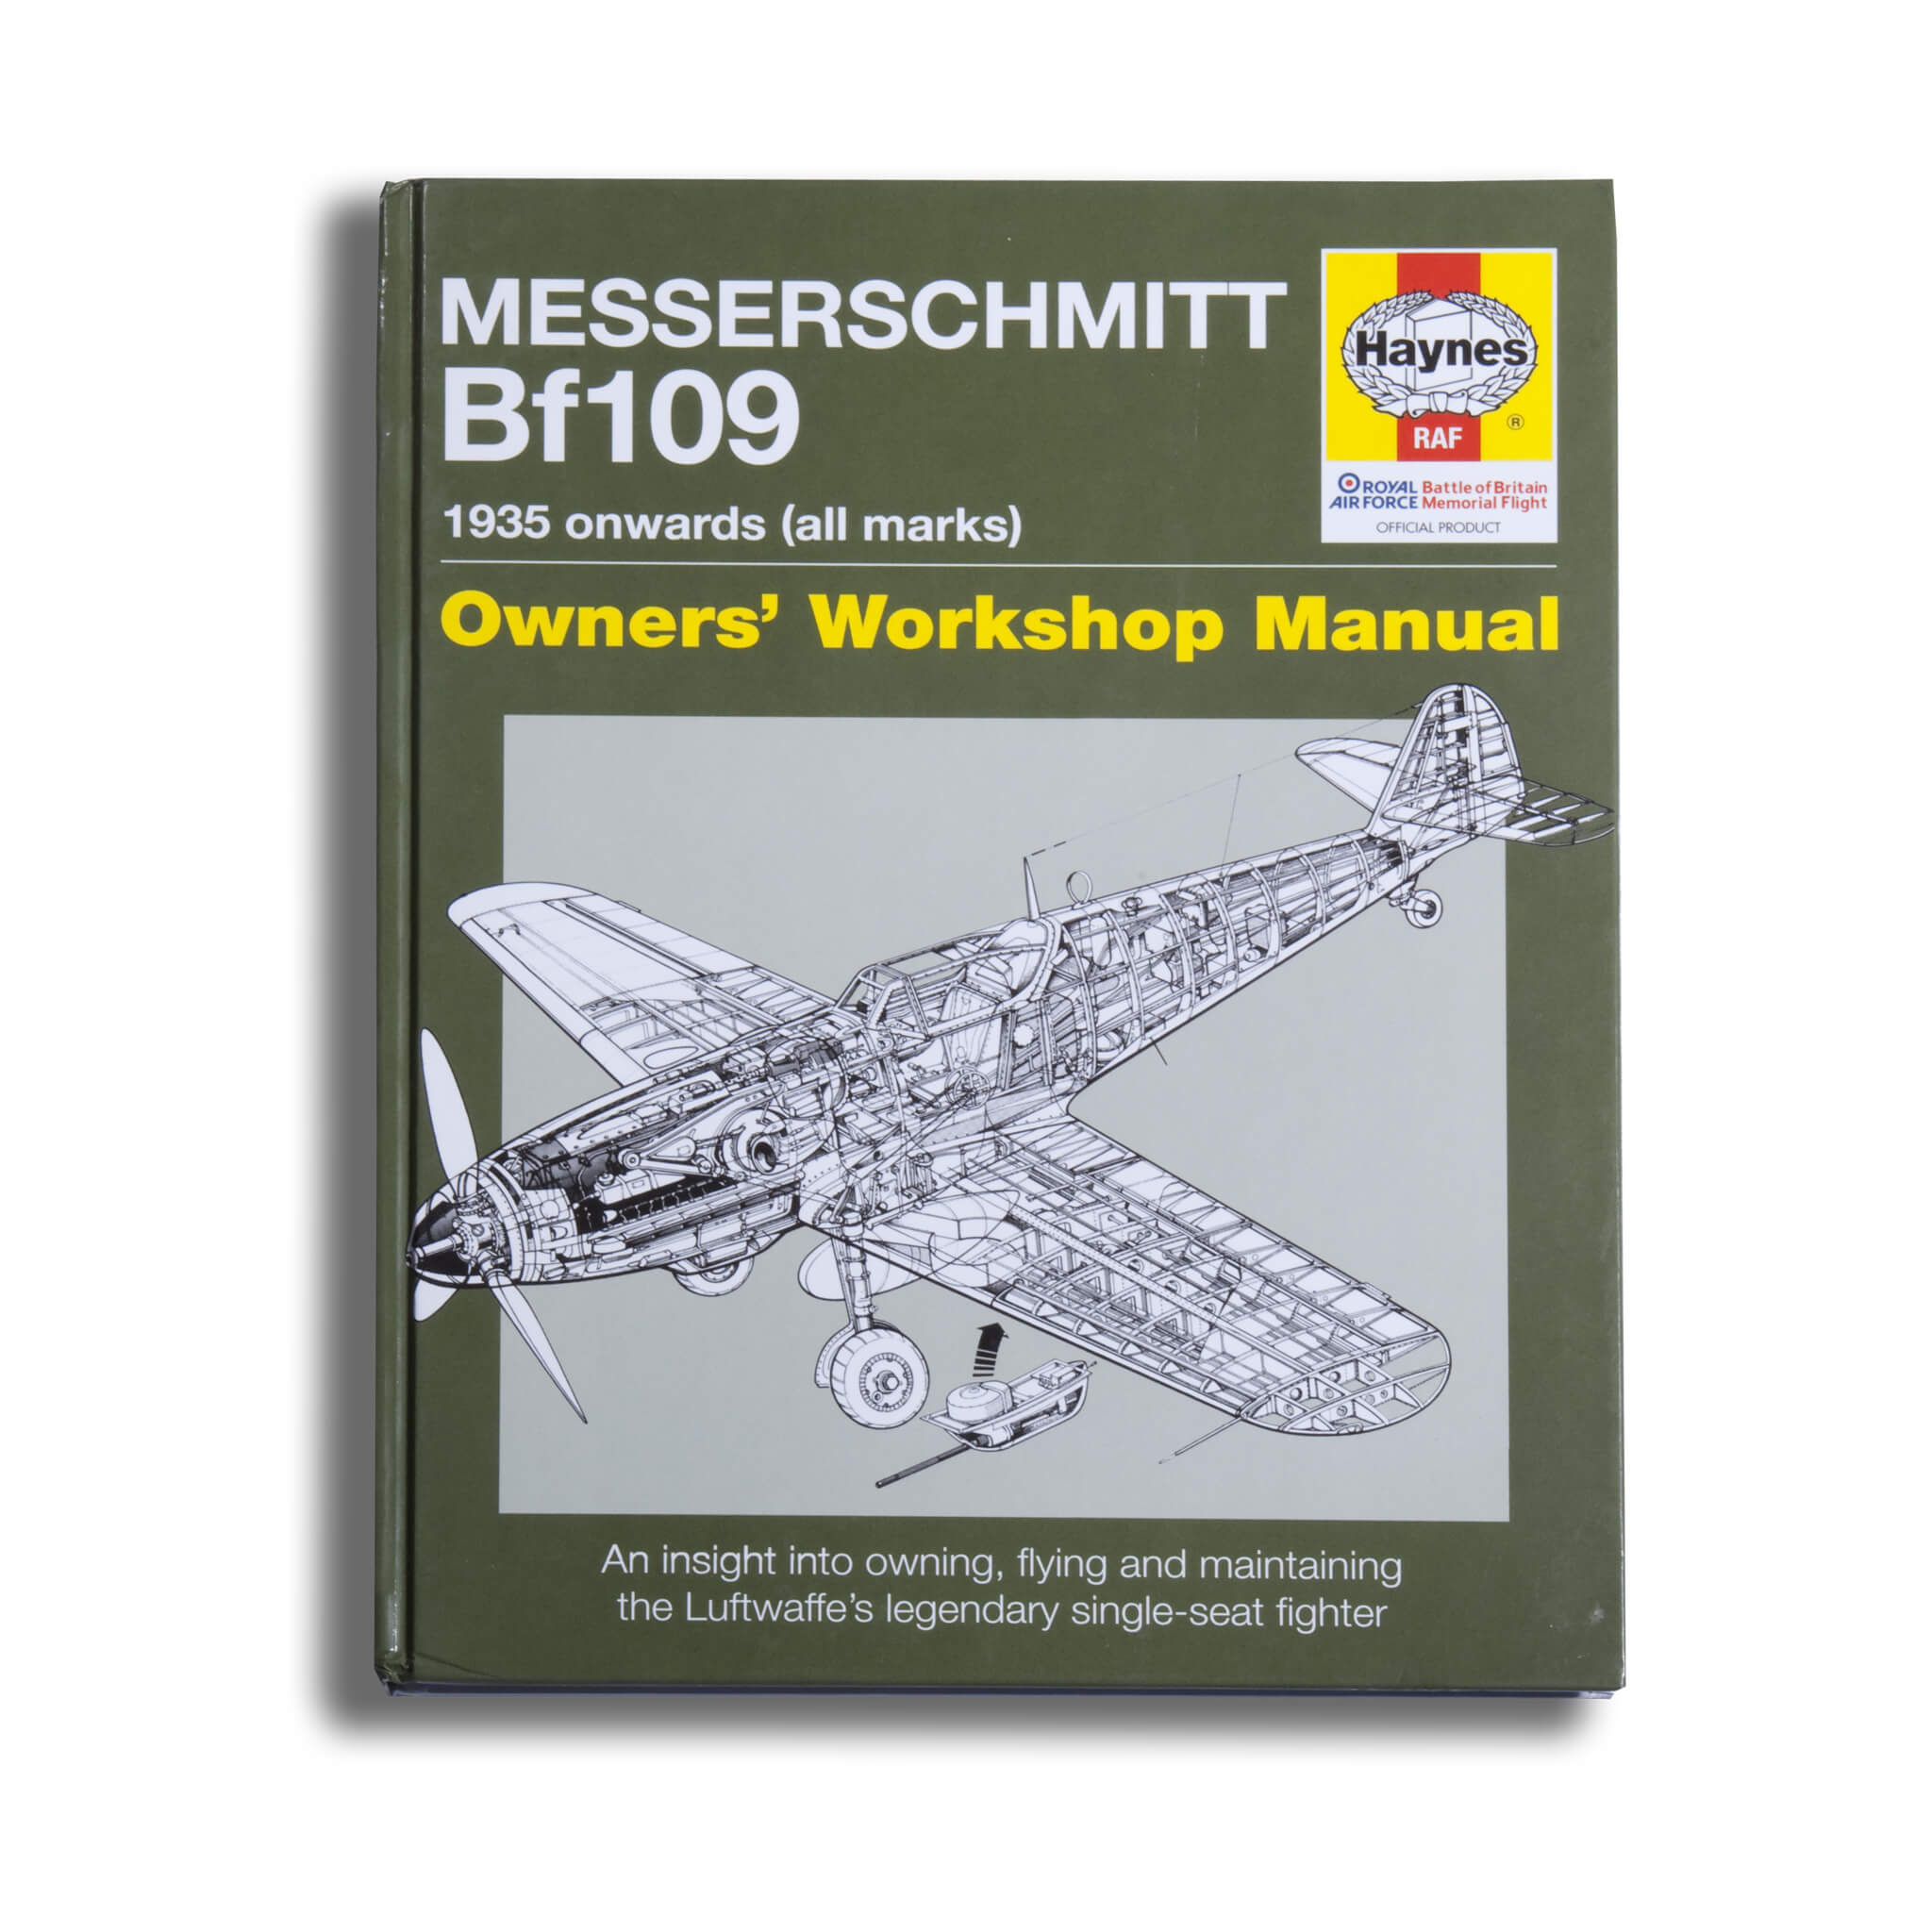 Messerschmitt Bf109 Owners Workshop Manual Book